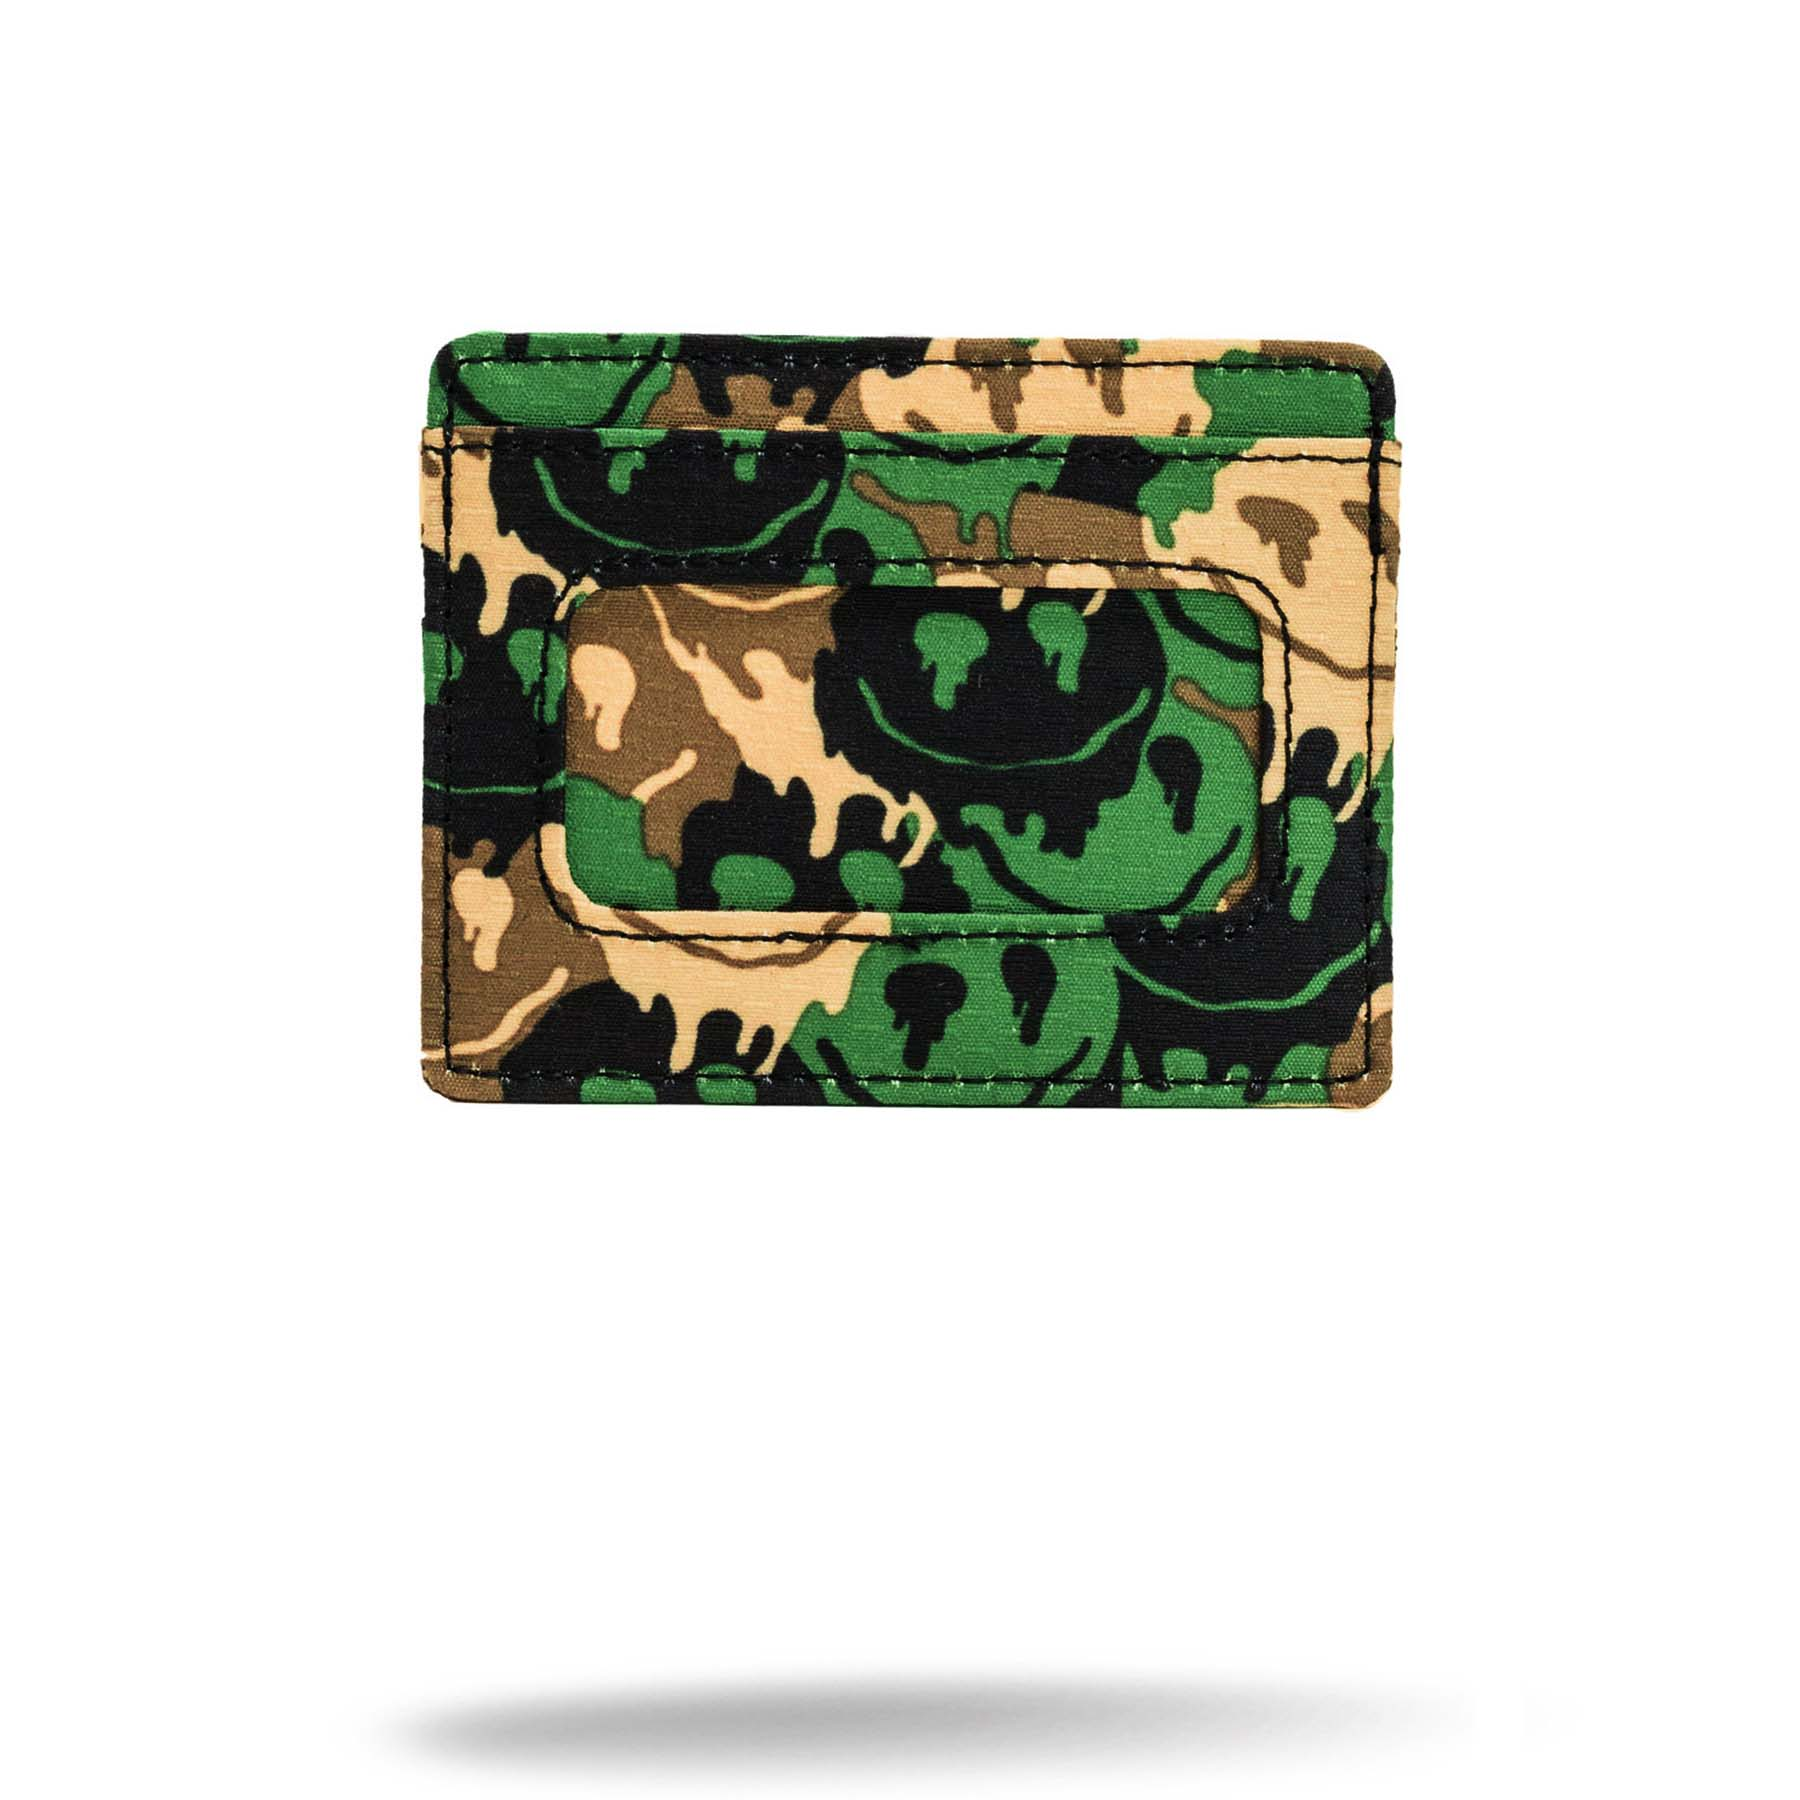 printed camo money holder